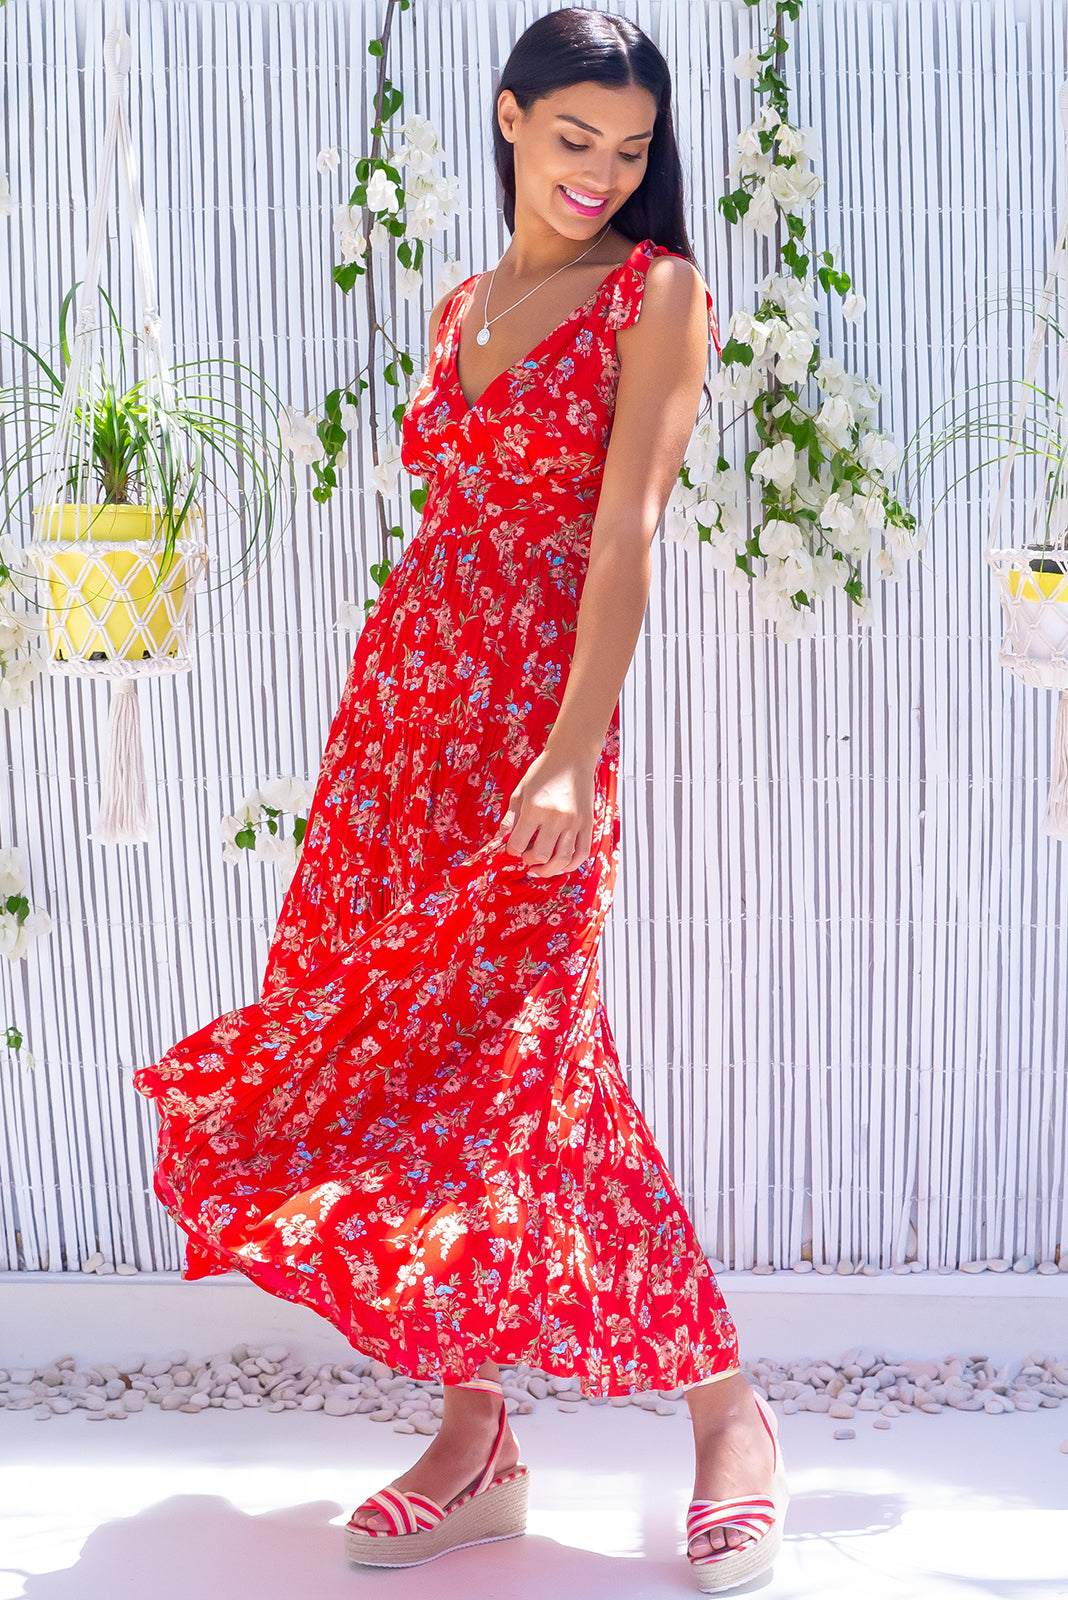 The Isla Lava Red Maxi Dress is perfect for cocktails at the Tiki Bar, this beauty features adjustable tie up shoulders, side pockets and 100% viscose in bright red base with pale rust floral print.